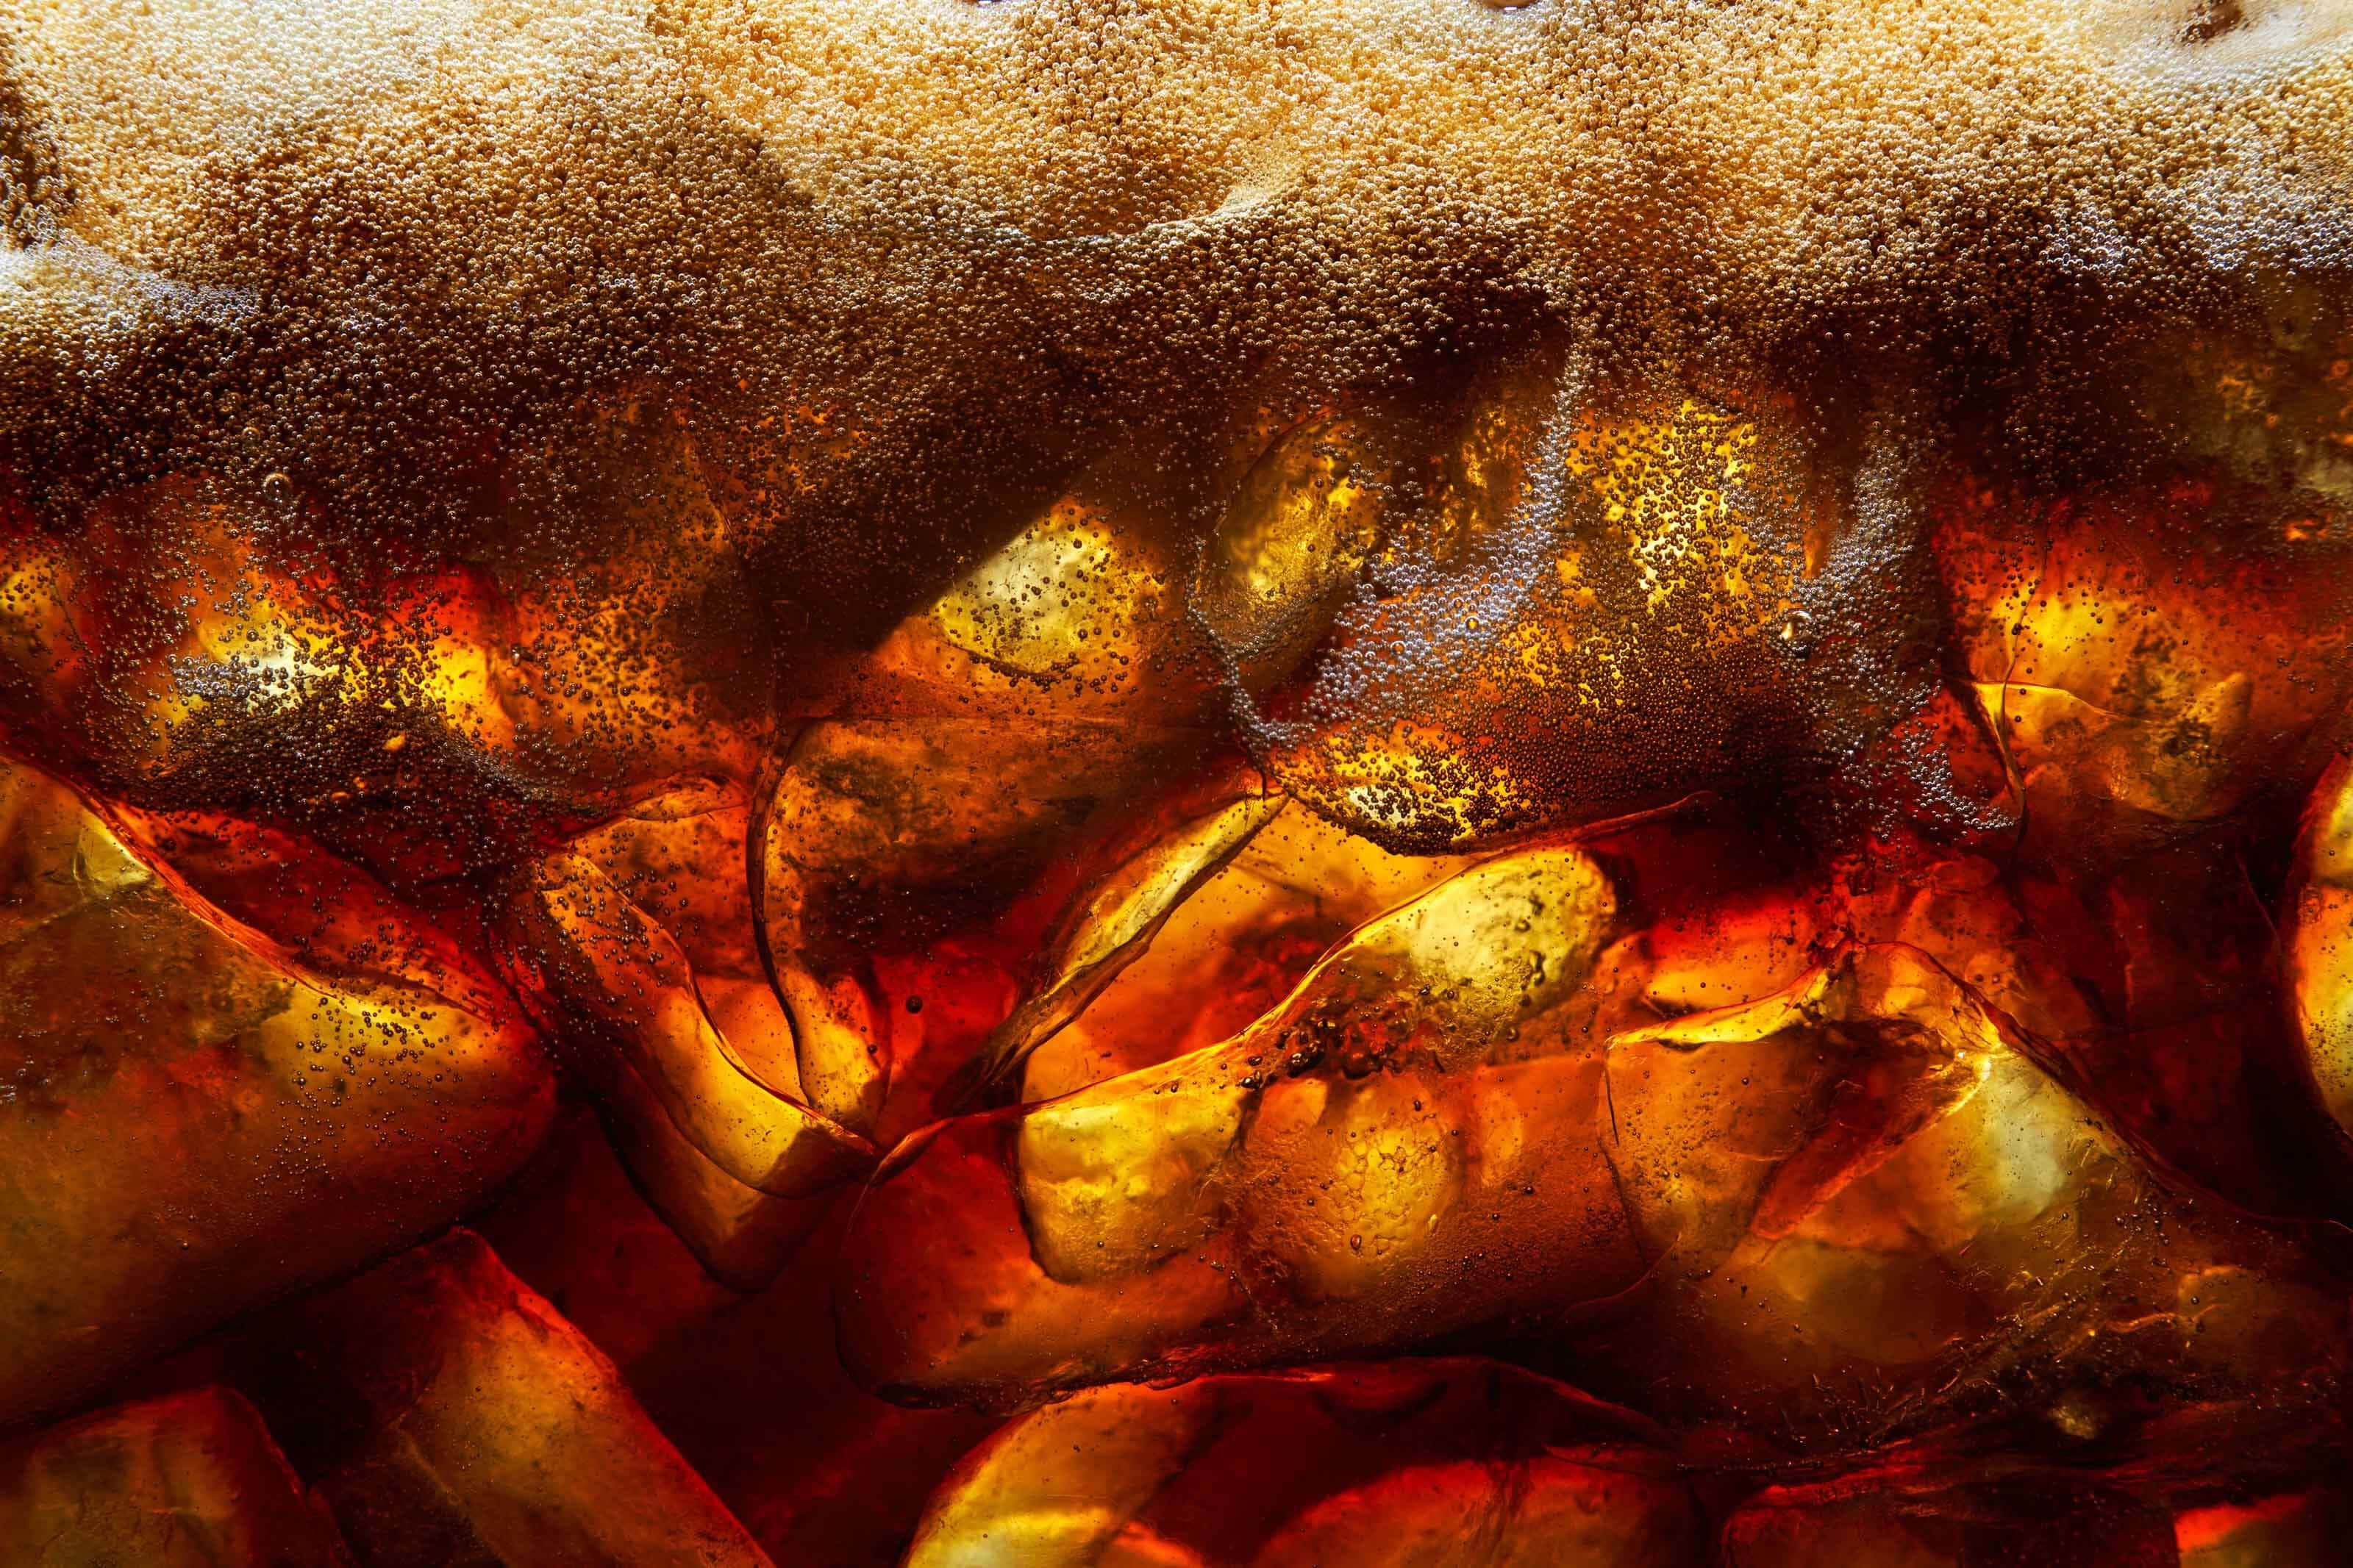 coke poured into ice with froth and bubbles back lit